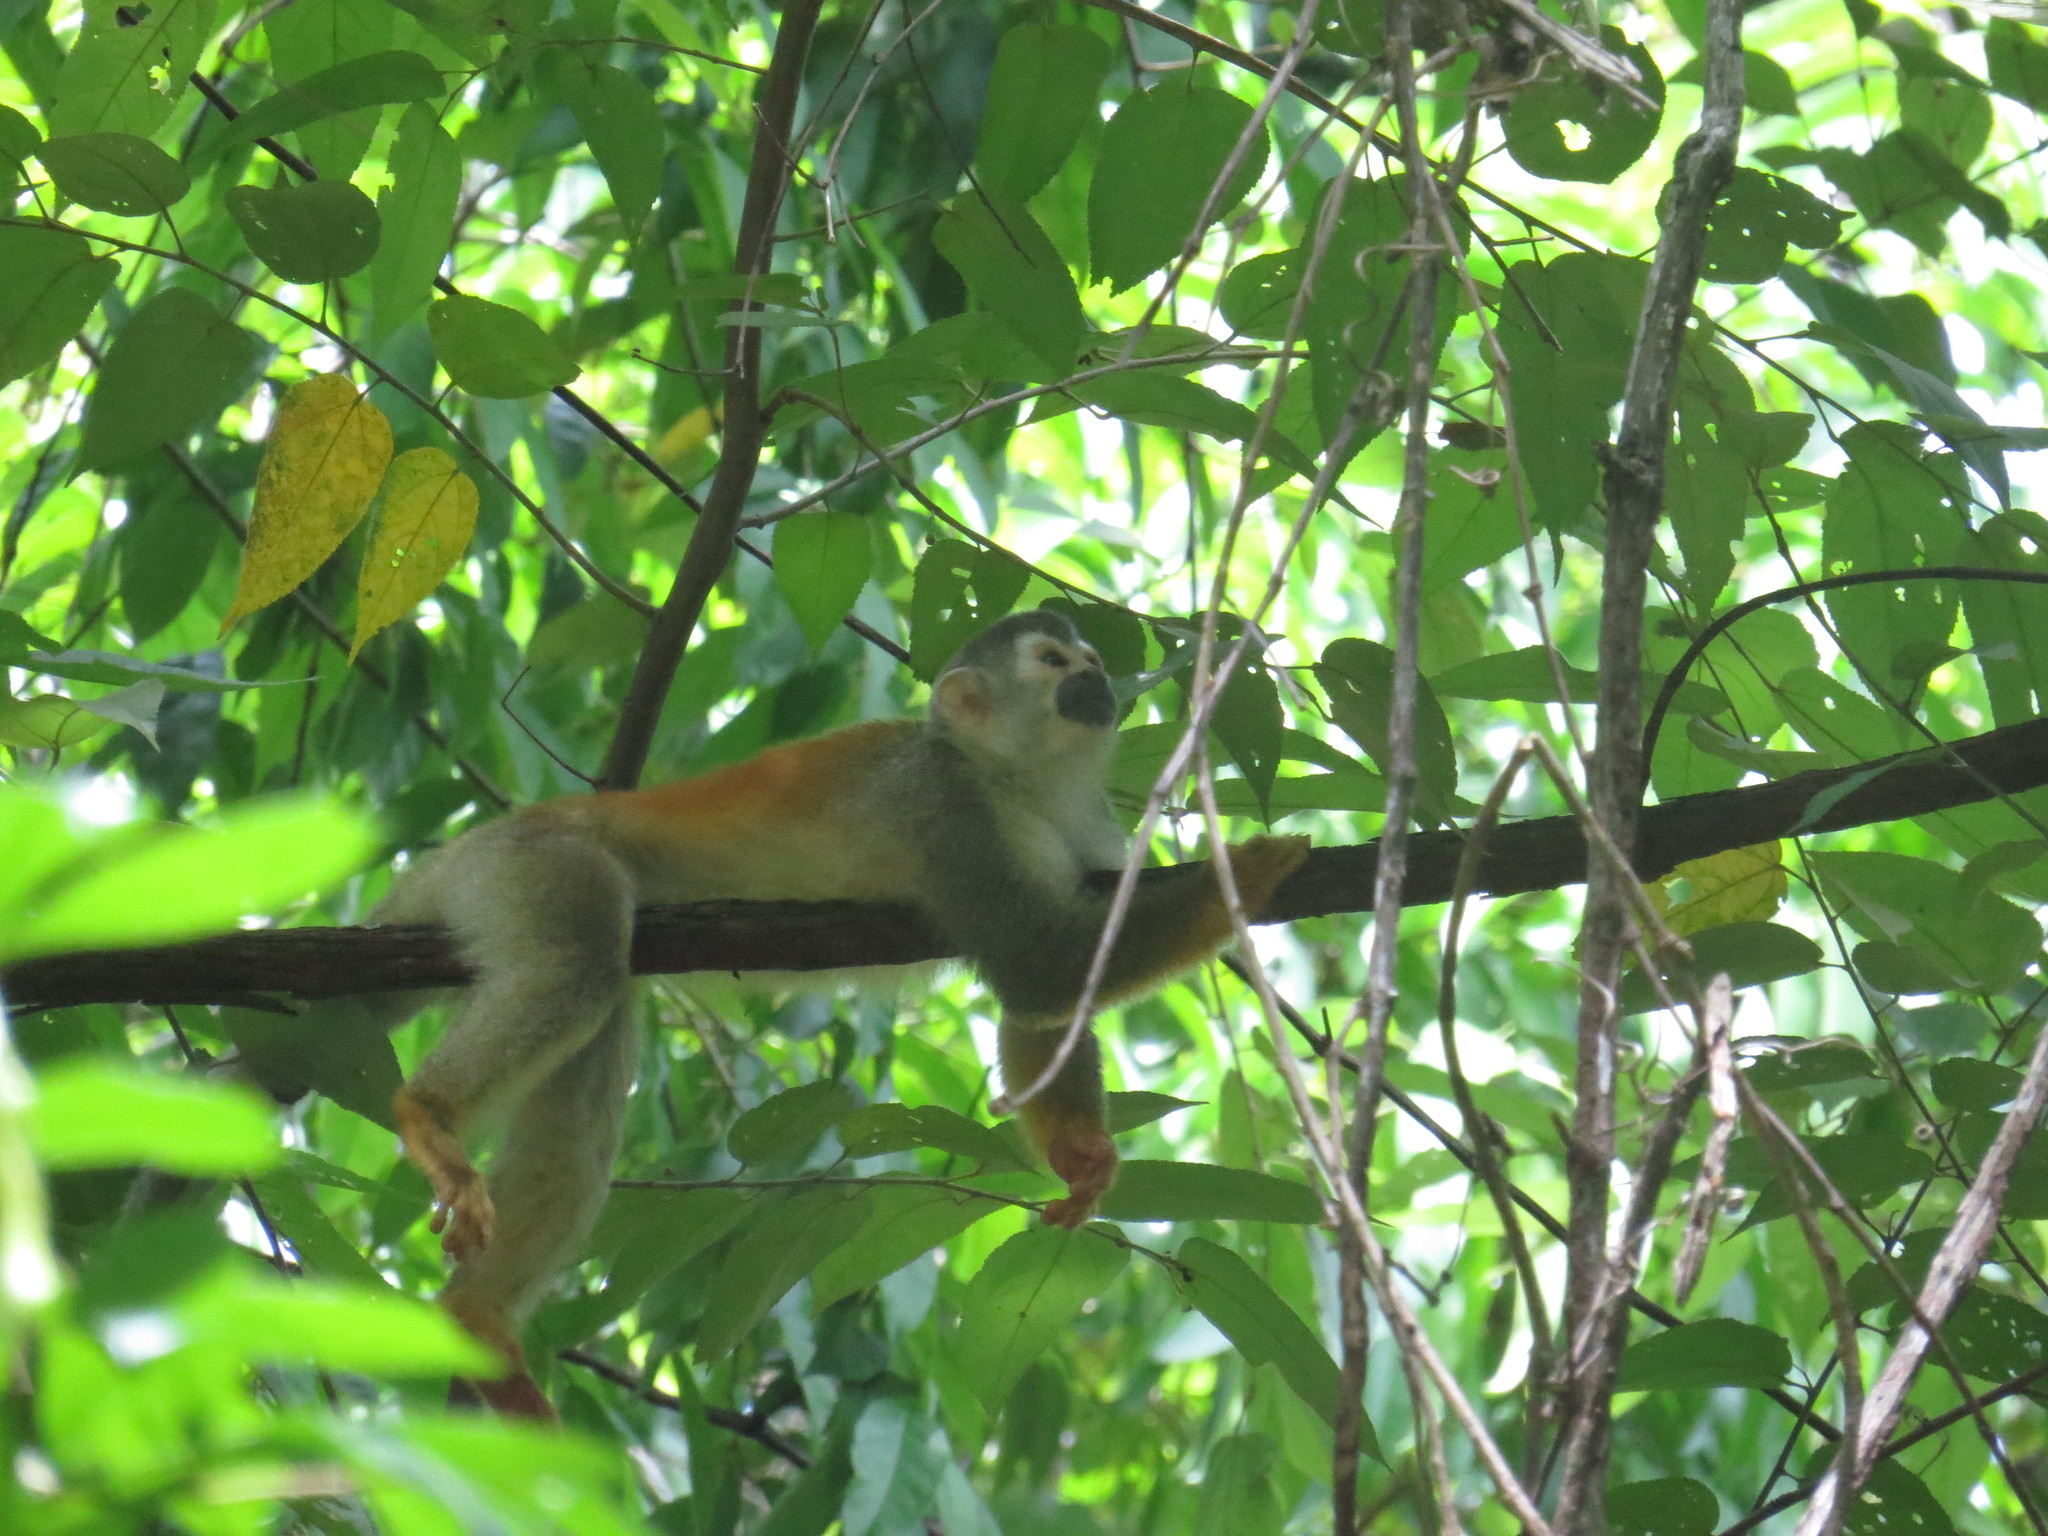 Image of Grey-crowned Central American Squirrel Monkey